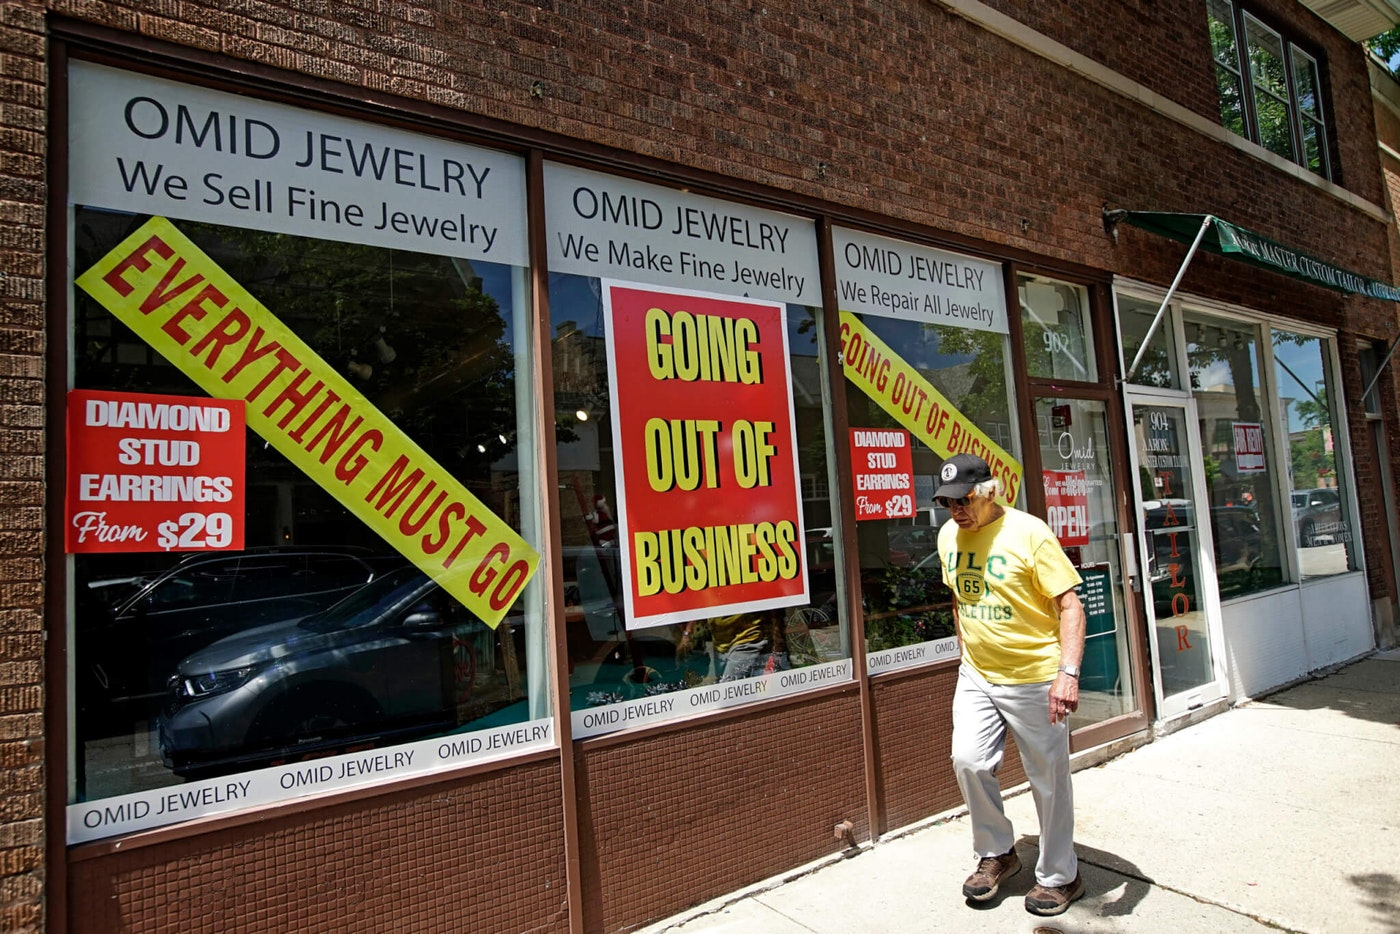 A man walks past a retail store that is going out of business due to the coronavirus pandemic in Winnetka, Ill., Tuesday, June 23, 2020. (AP Photo/Nam Y. Huh)